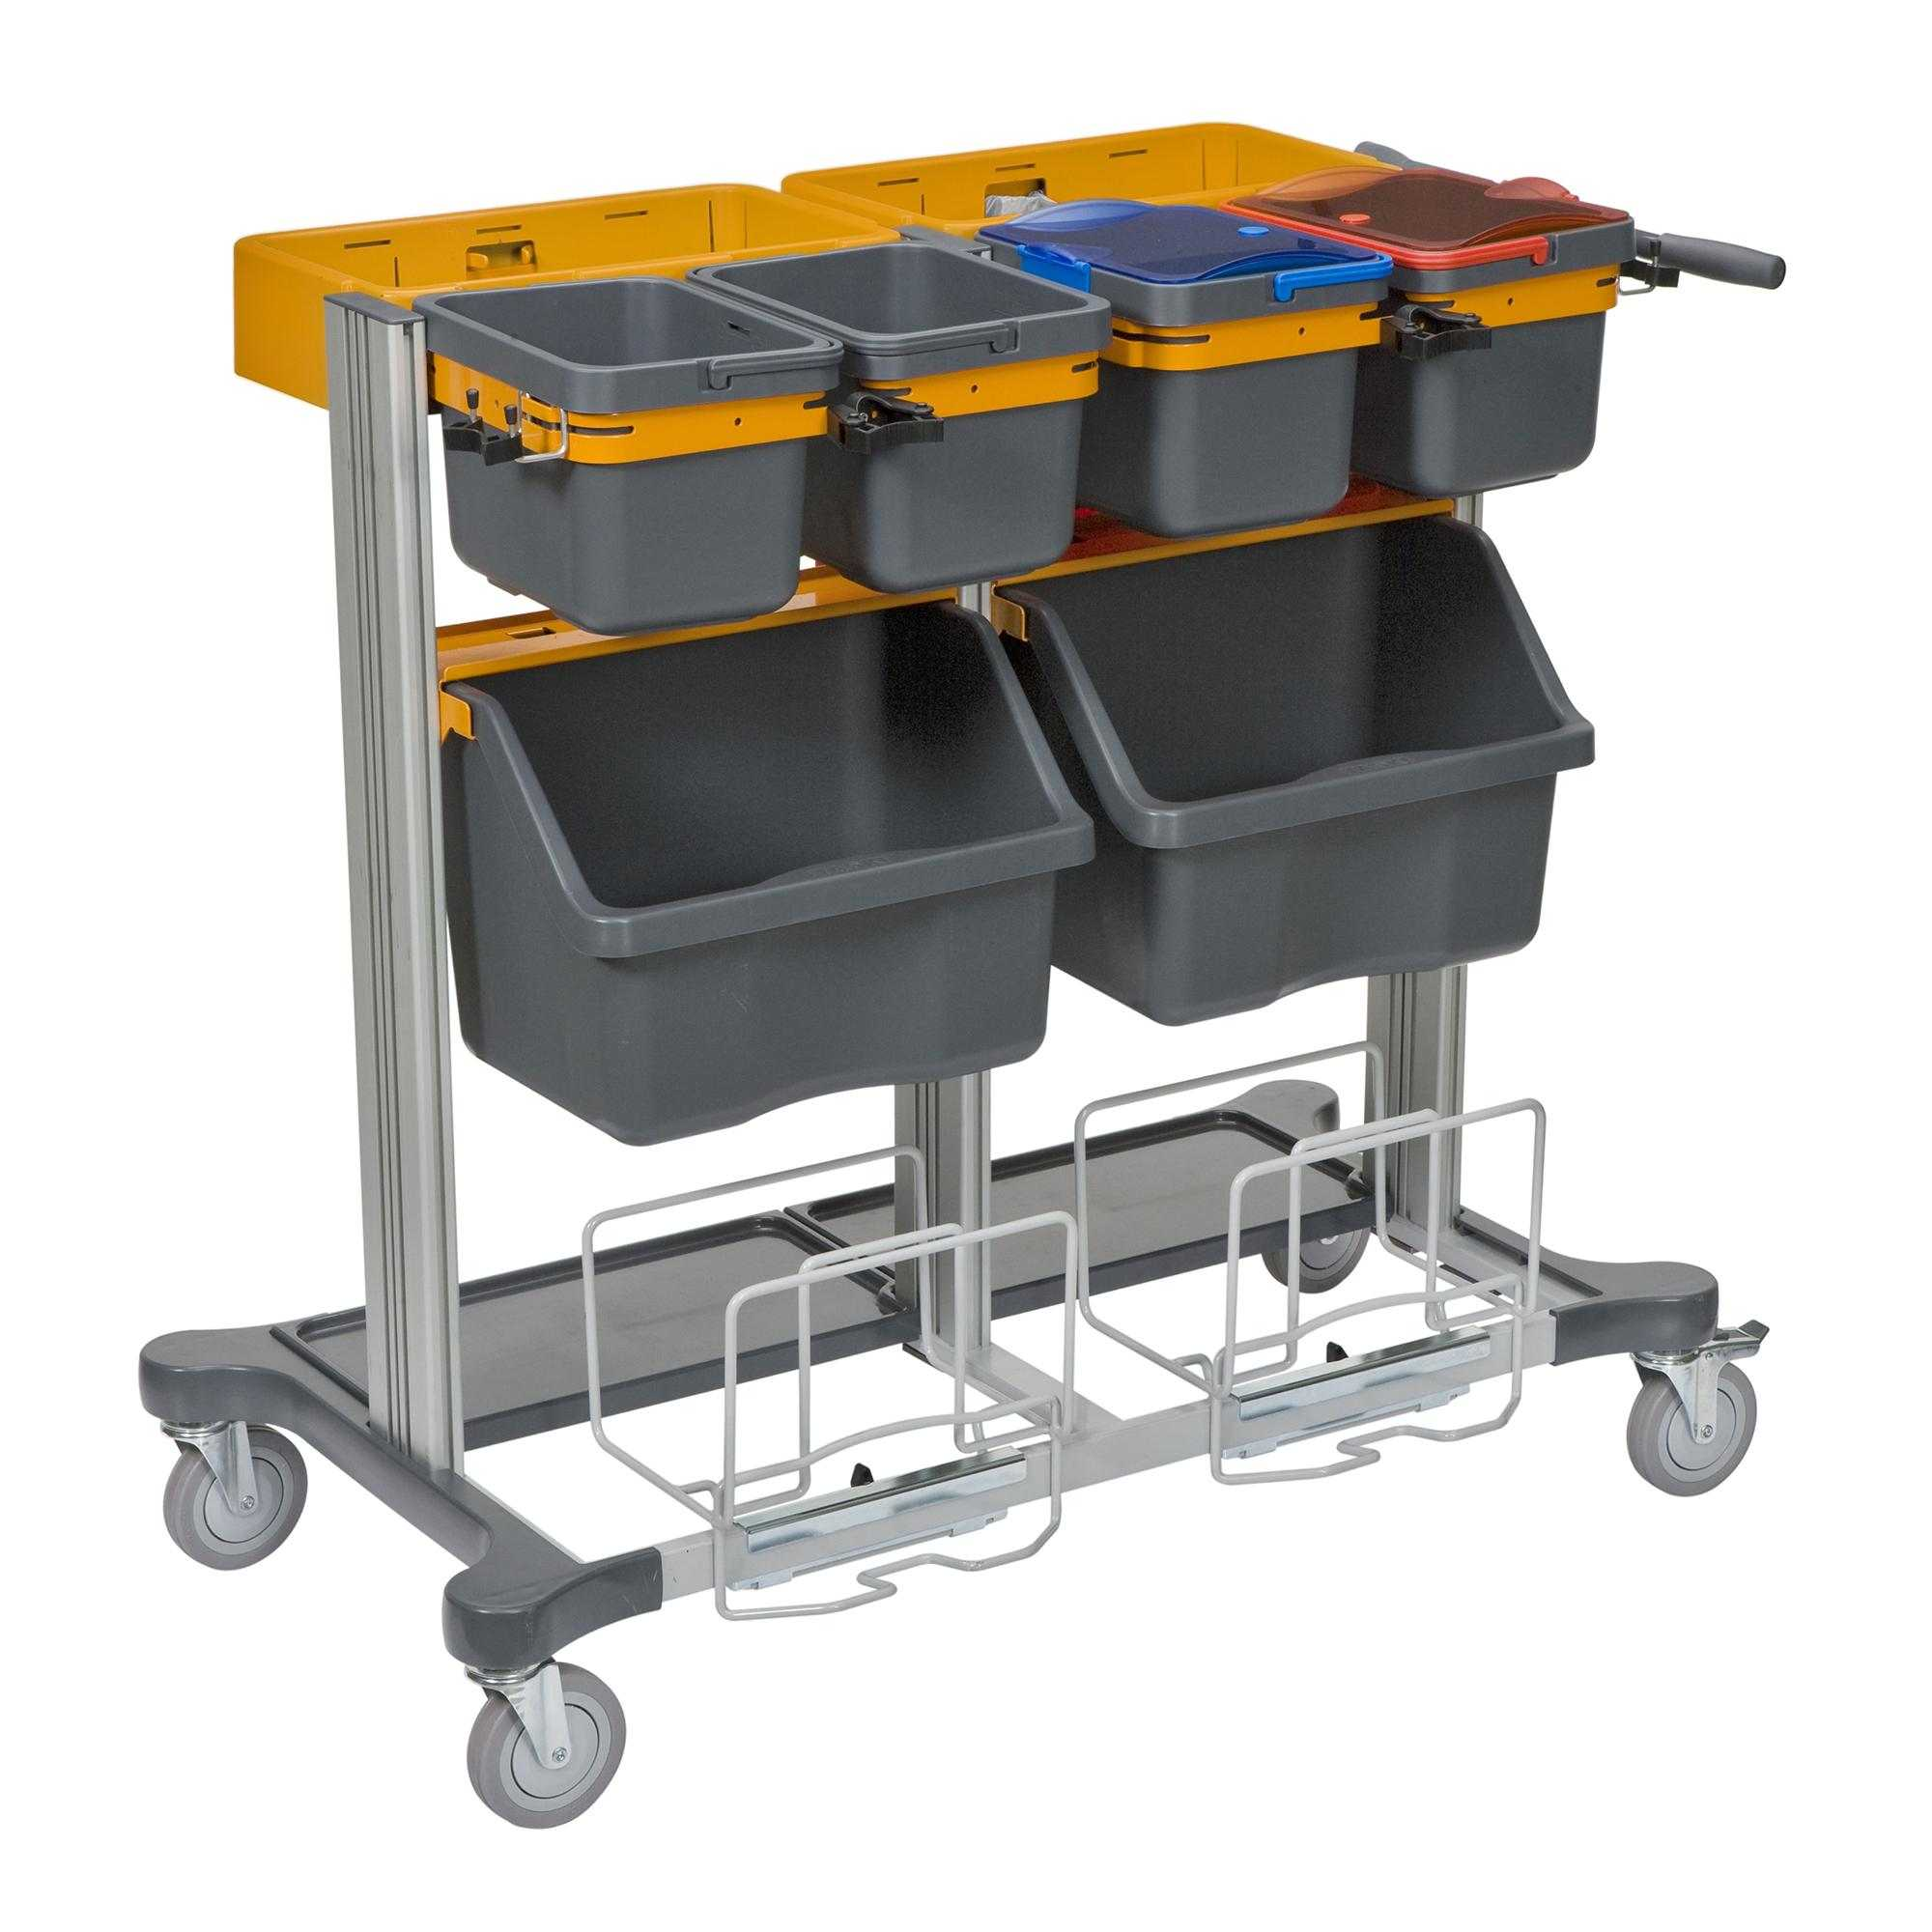 TASKI%20Mini%20Open%20Trolley_7517355%202000x2000px.jpg